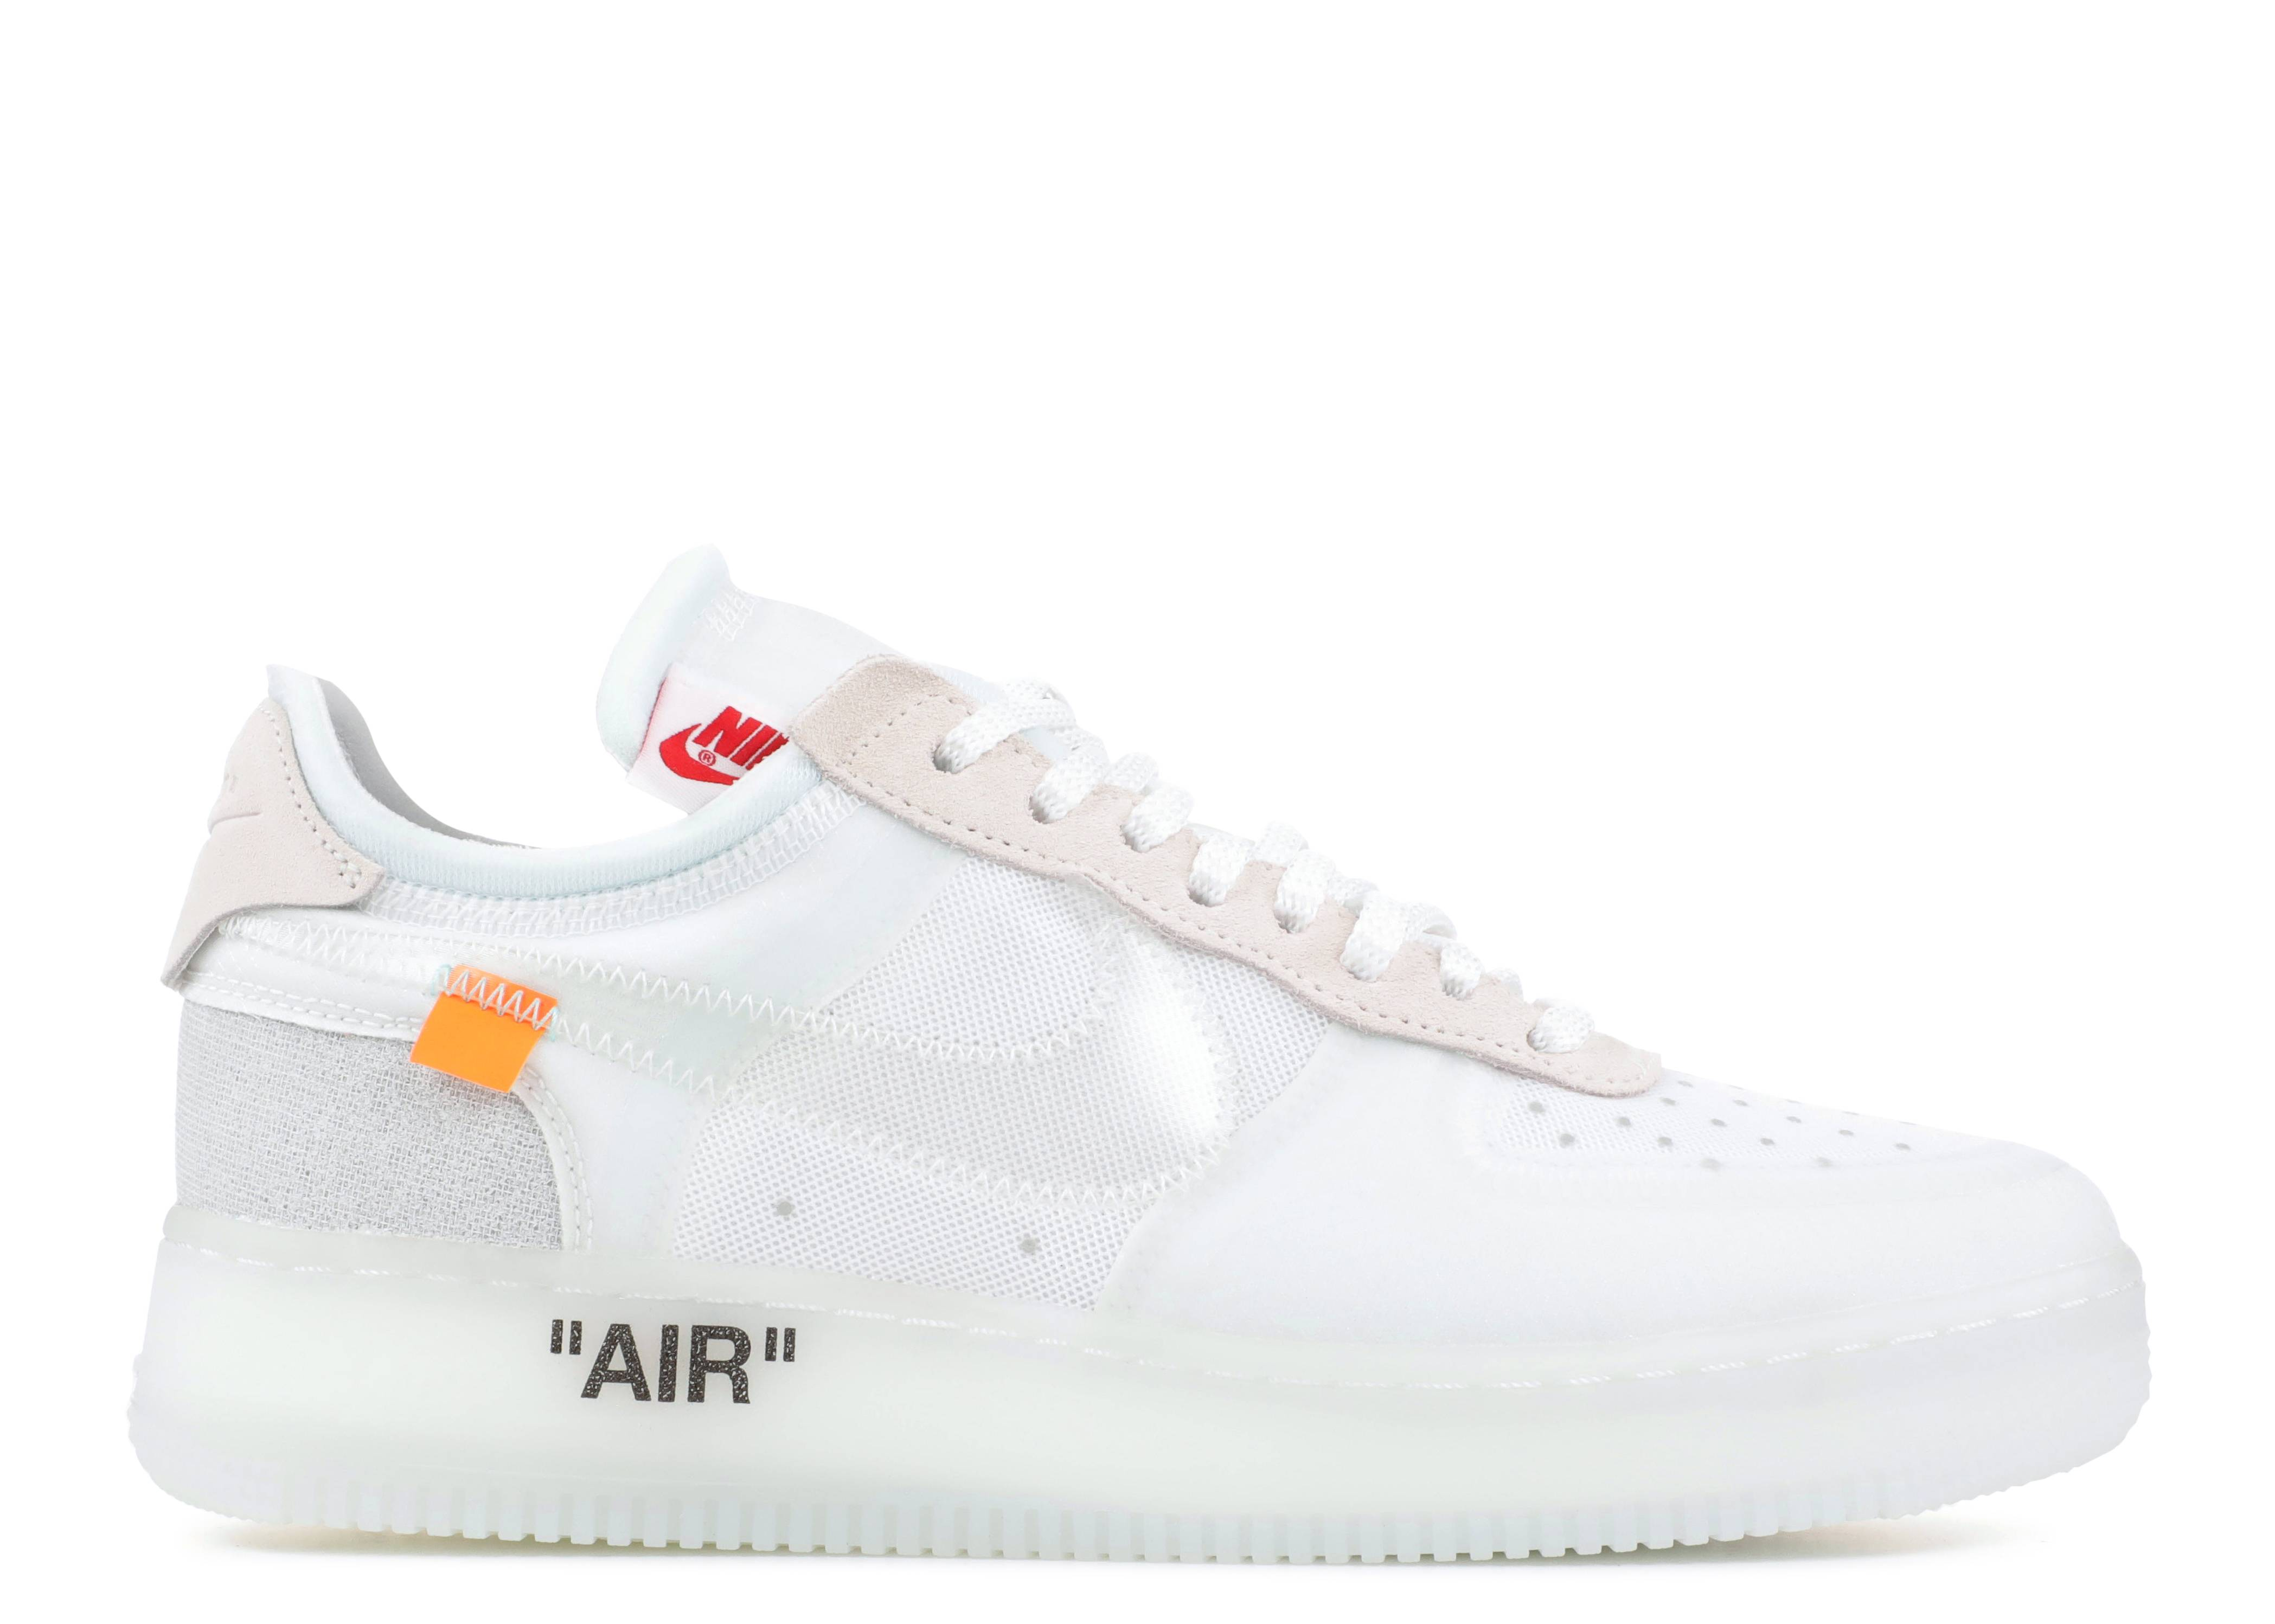 99884682 The 10 : Nike Air Force 1 Low